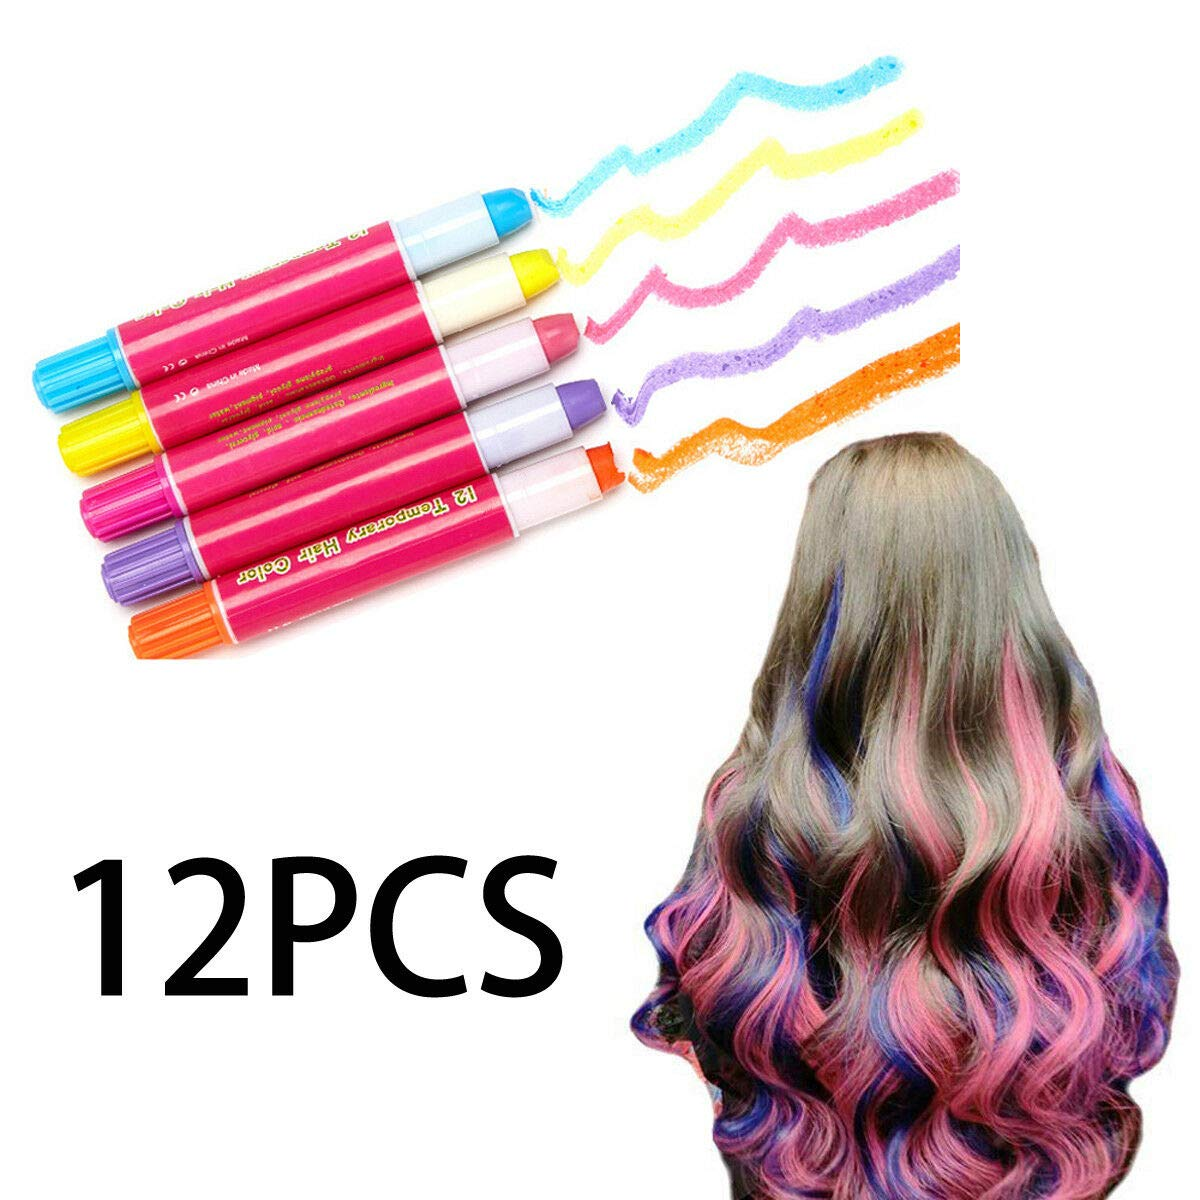 Honeybeloved Hair Dye Color Pens Non-Toxic Chalk Colorful Hair Chalk Pens 12PCS Temporary Multi color by Honeybeloved